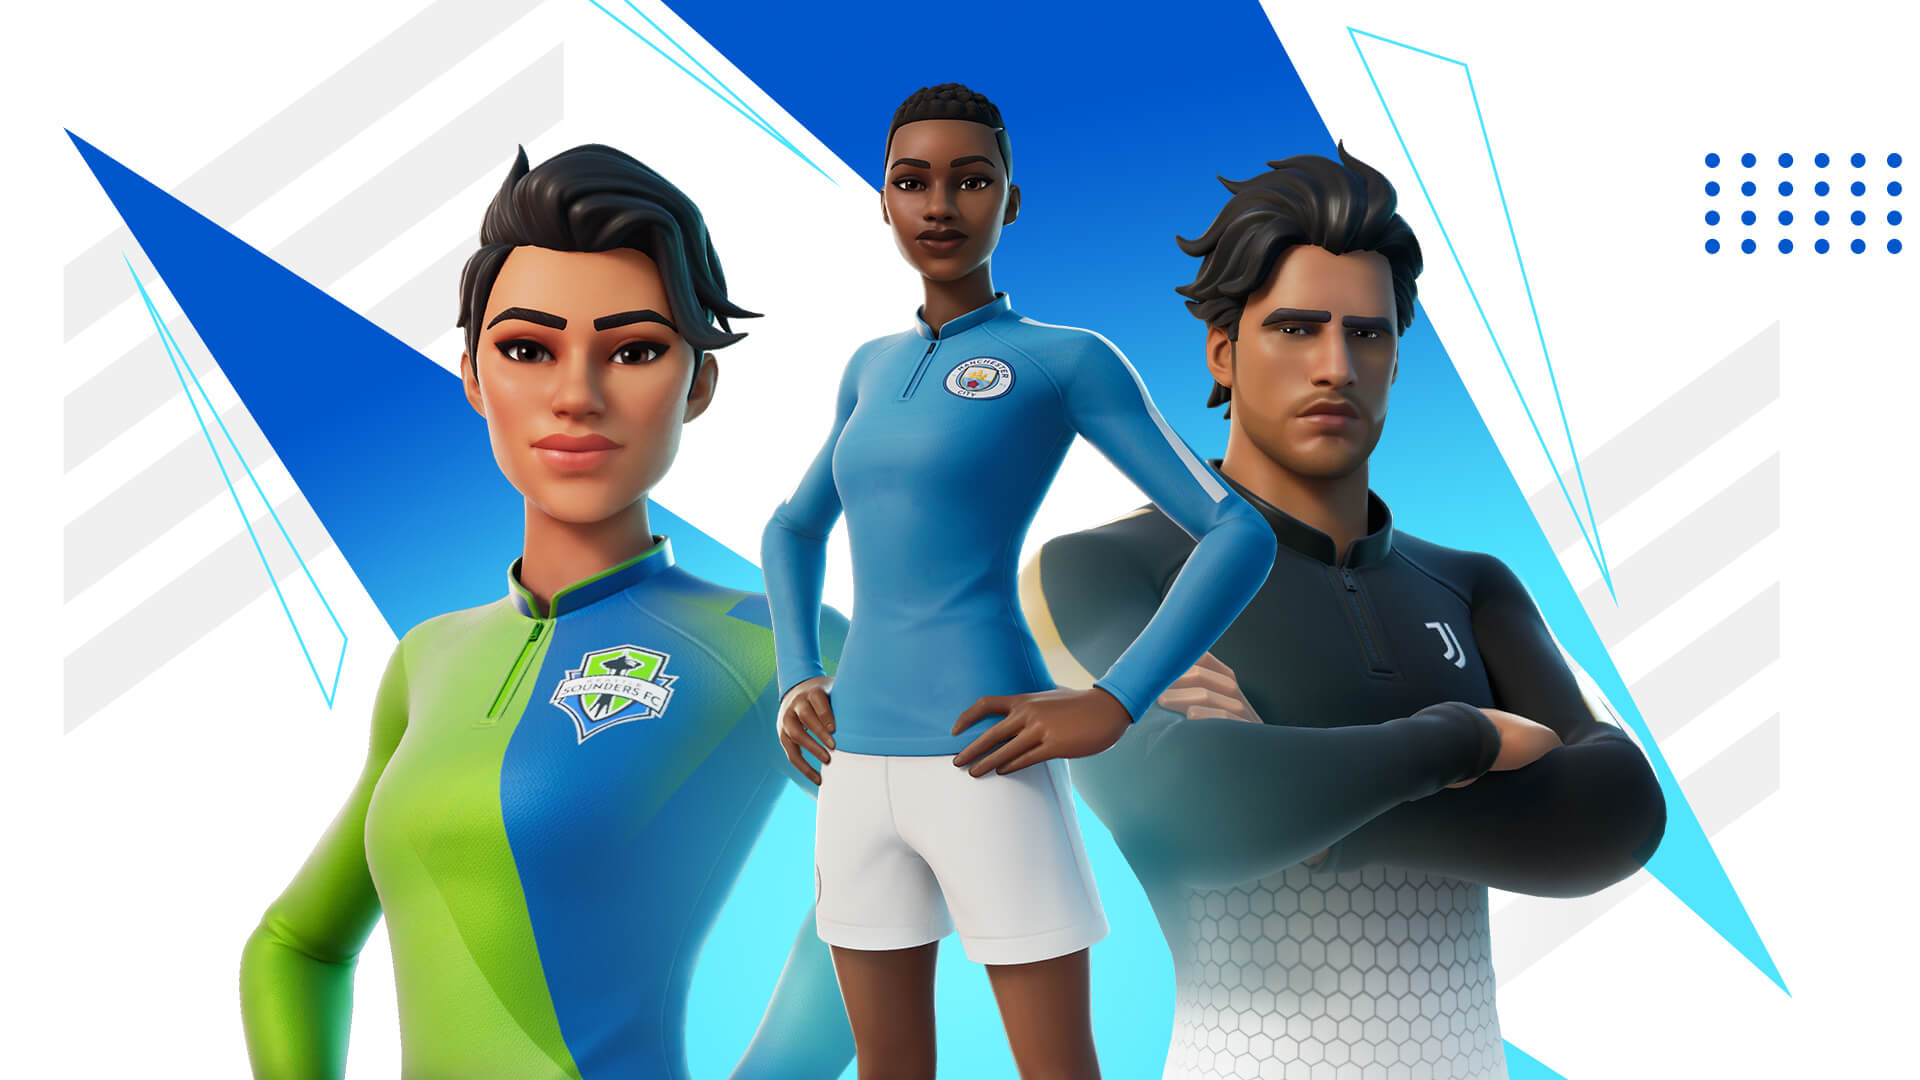 Il mondo del Calcio arriva su Fortnite | Video